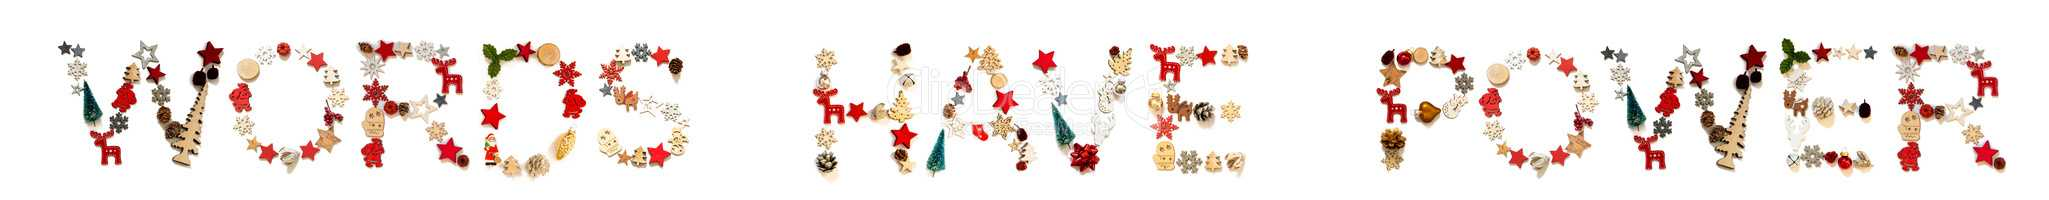 Colorful Christmas Decoration Letter Building Word Words Have Power